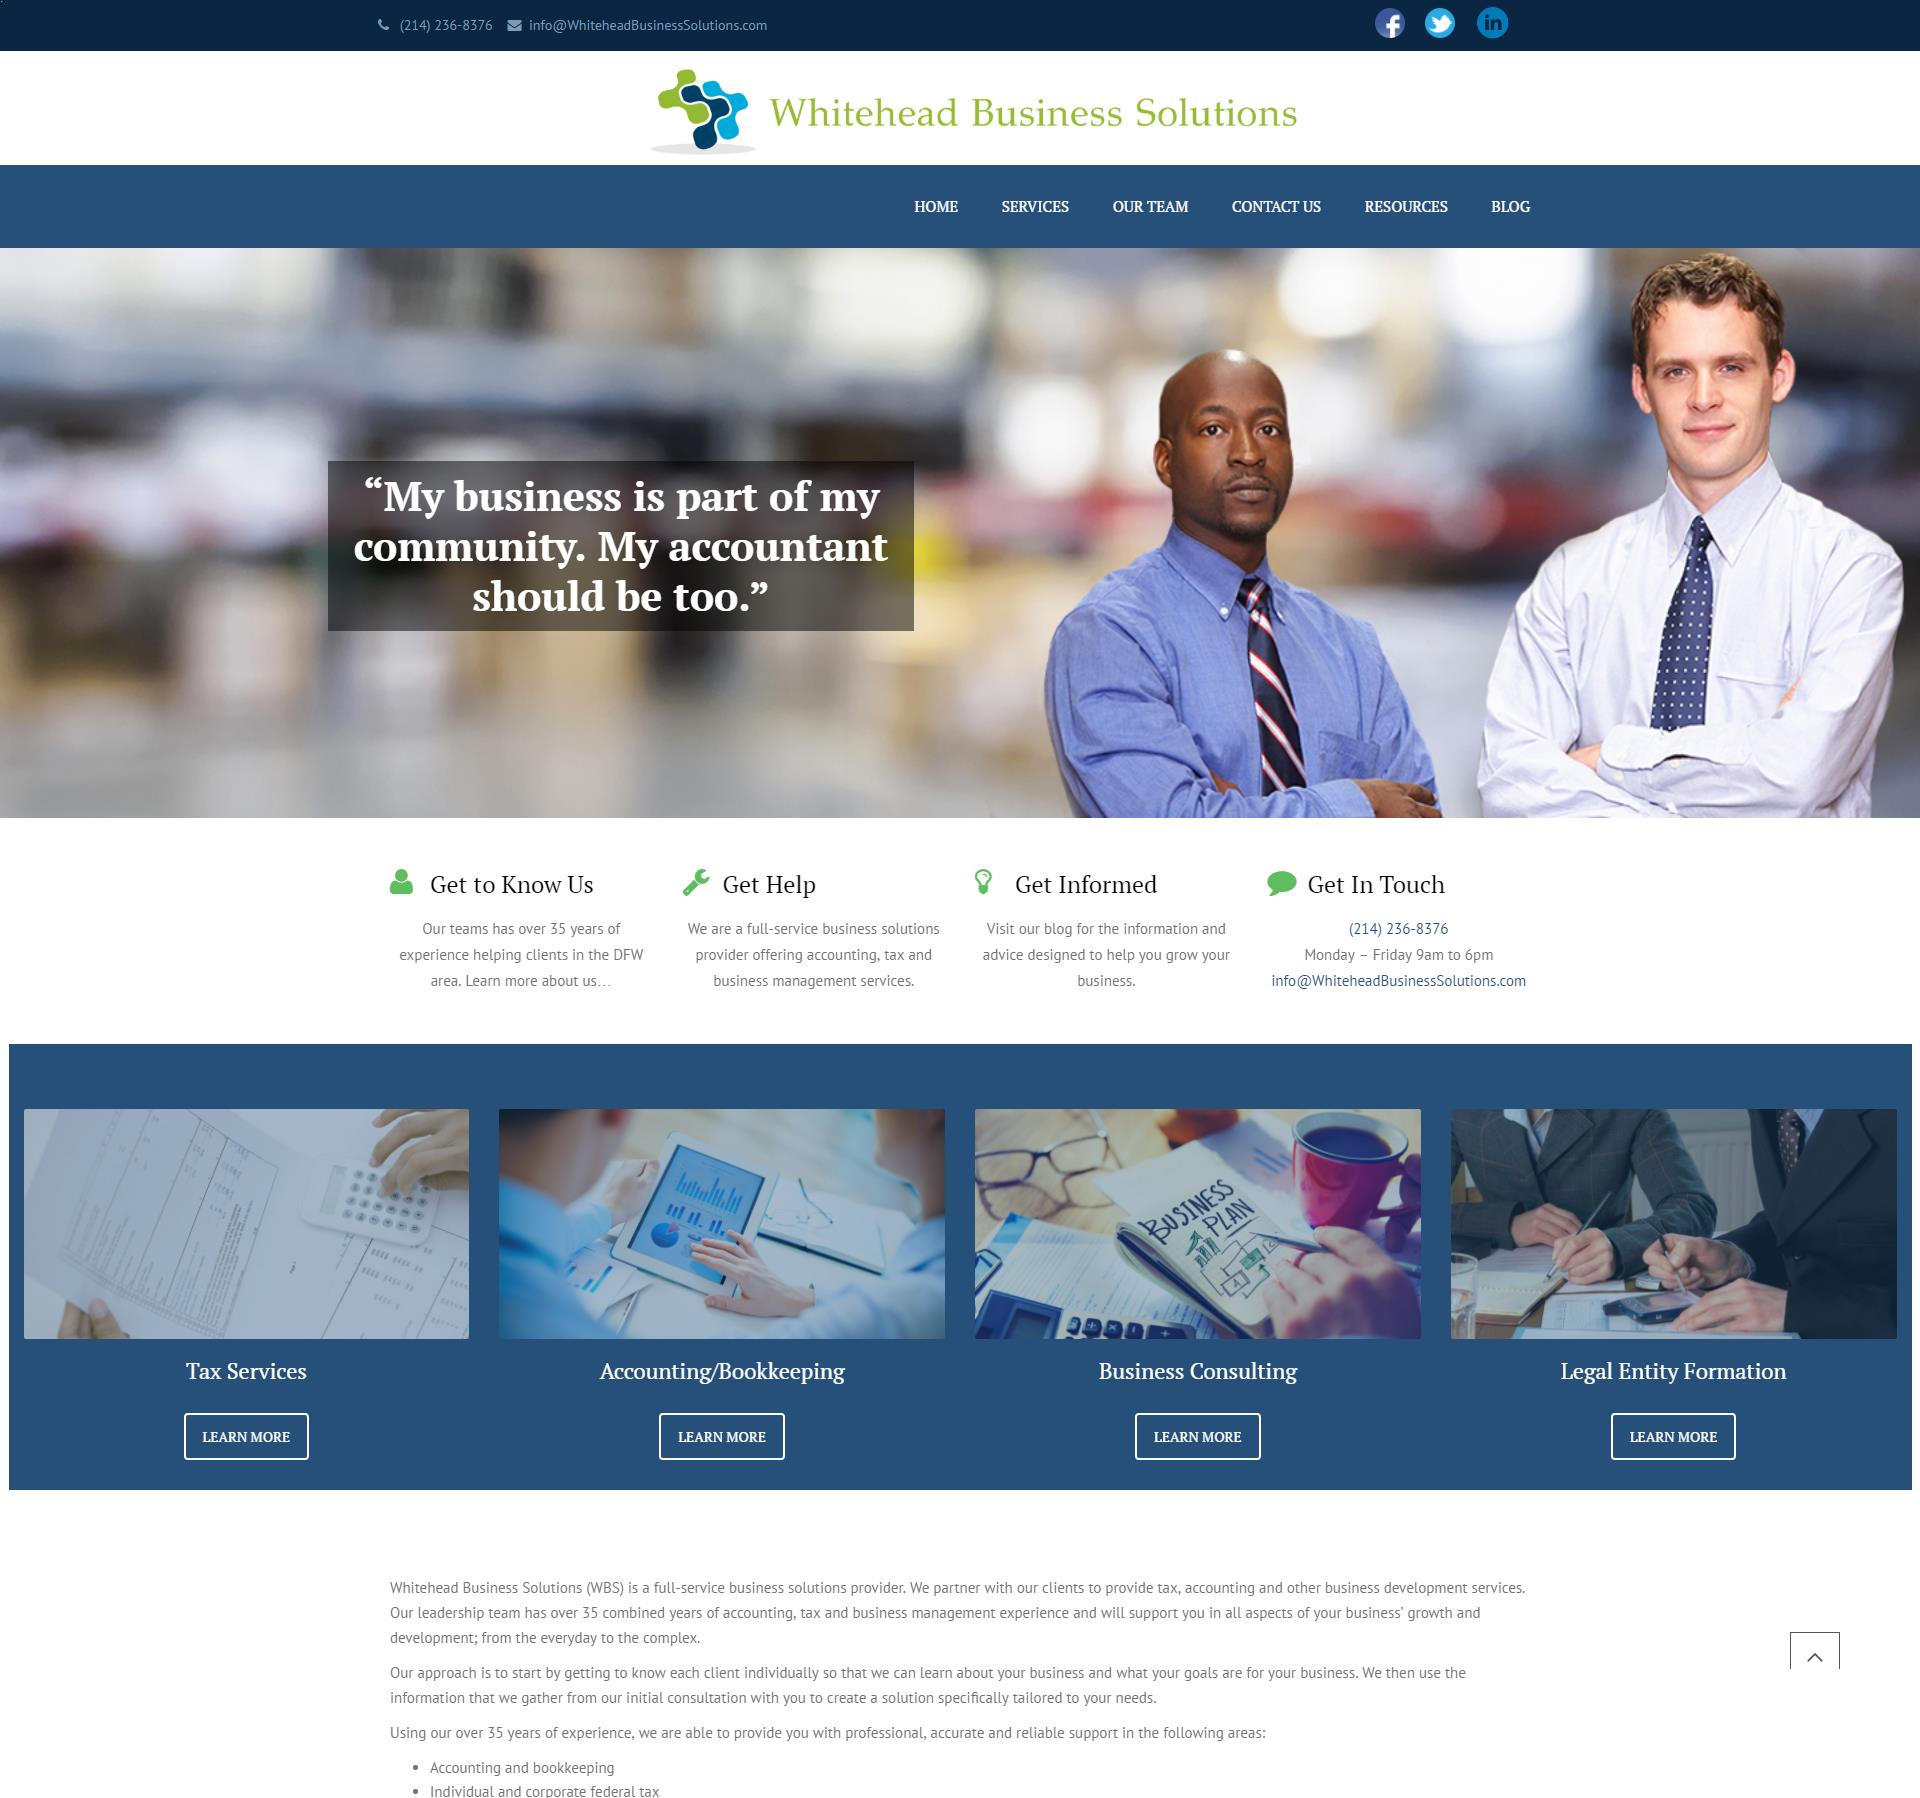 Whitehead Business Solutions